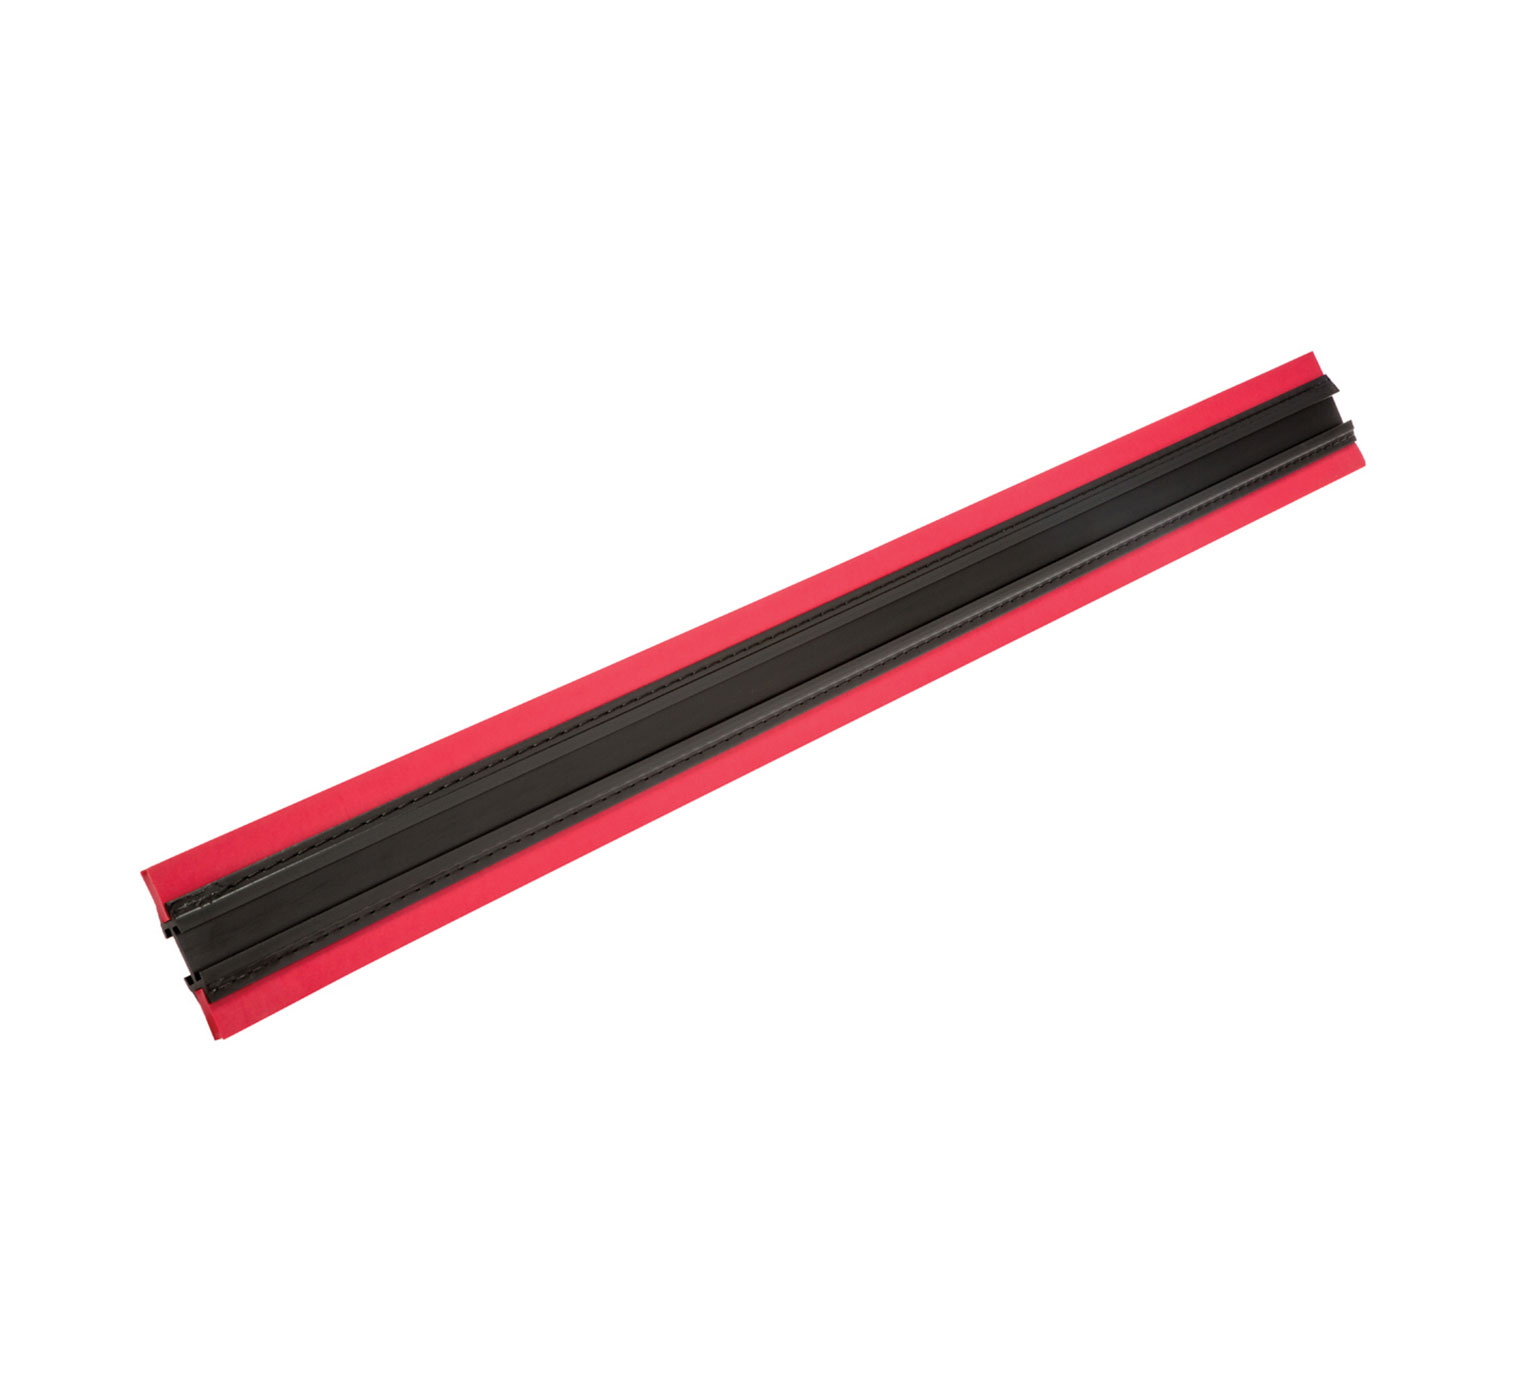 04919 Linatex Rear Squeegee Kit – 46.9 in alt 1